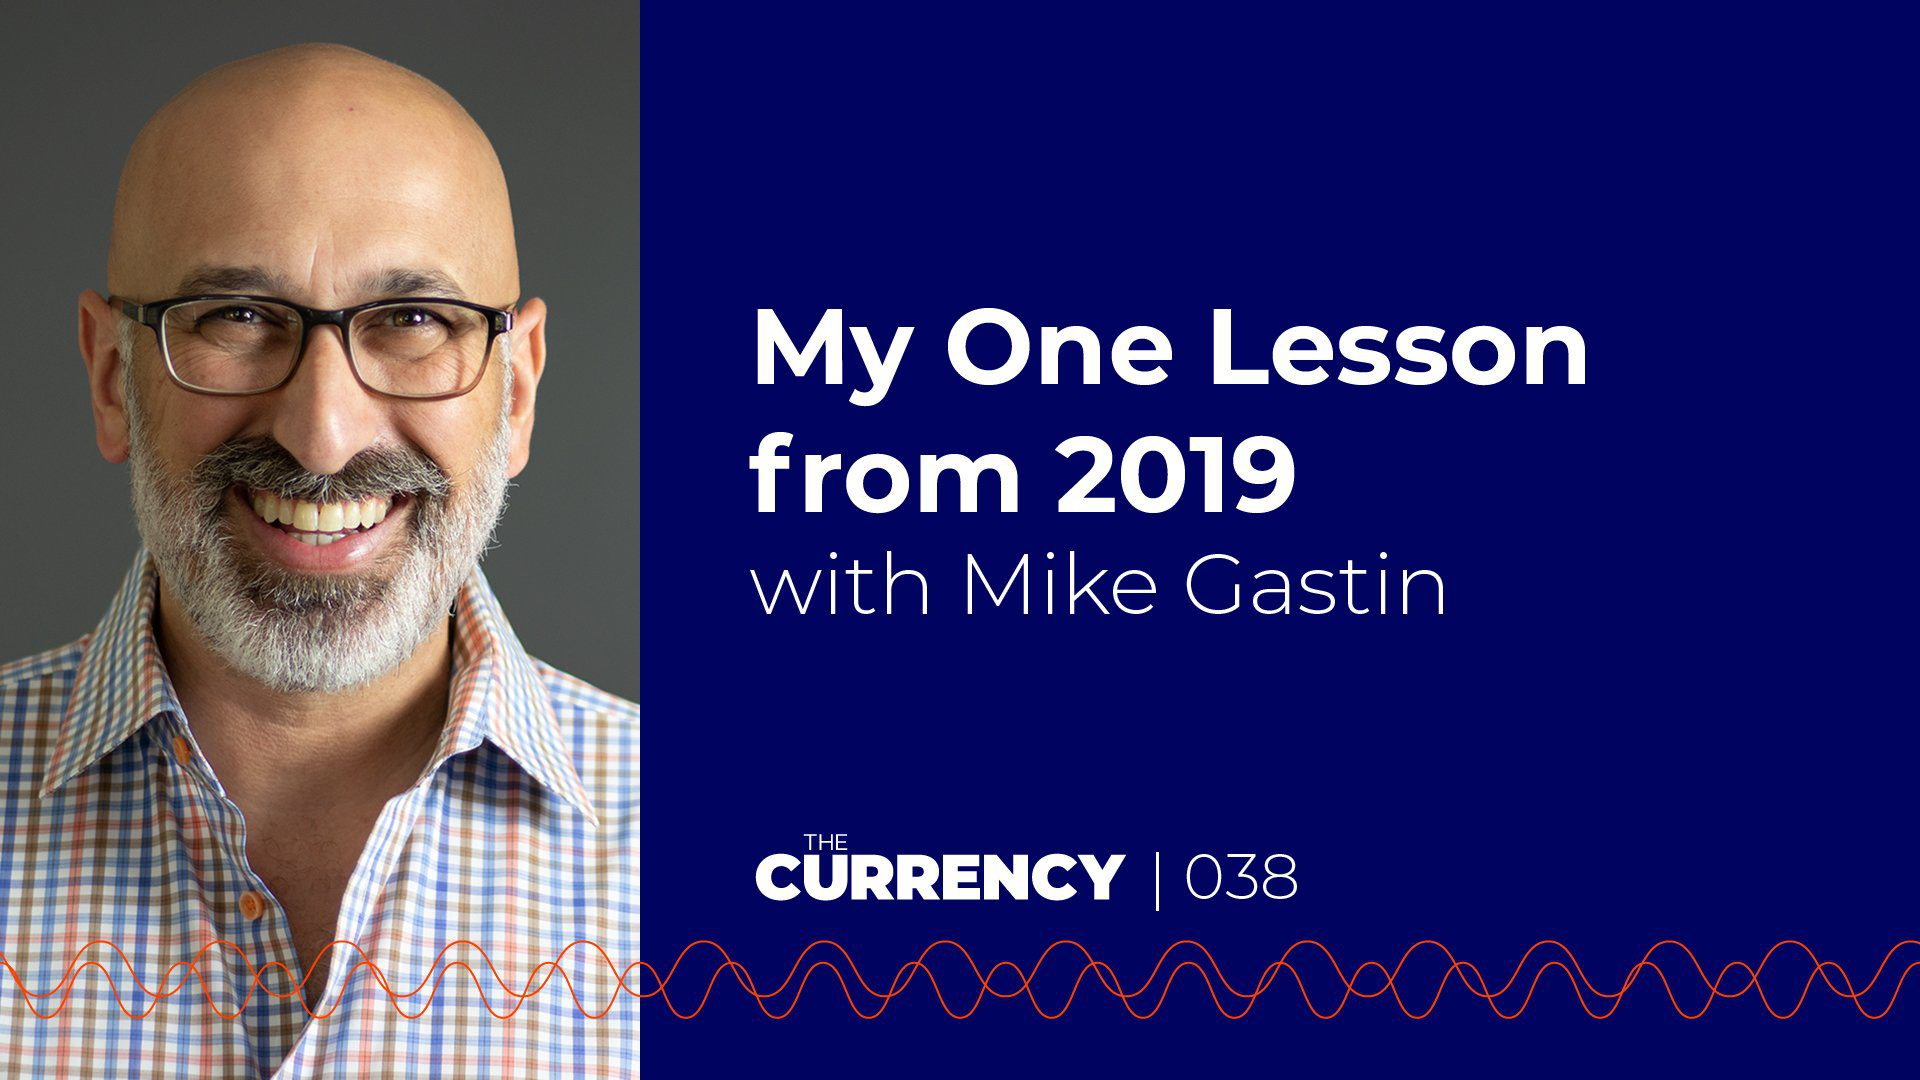 Mike Gastin on The Currency